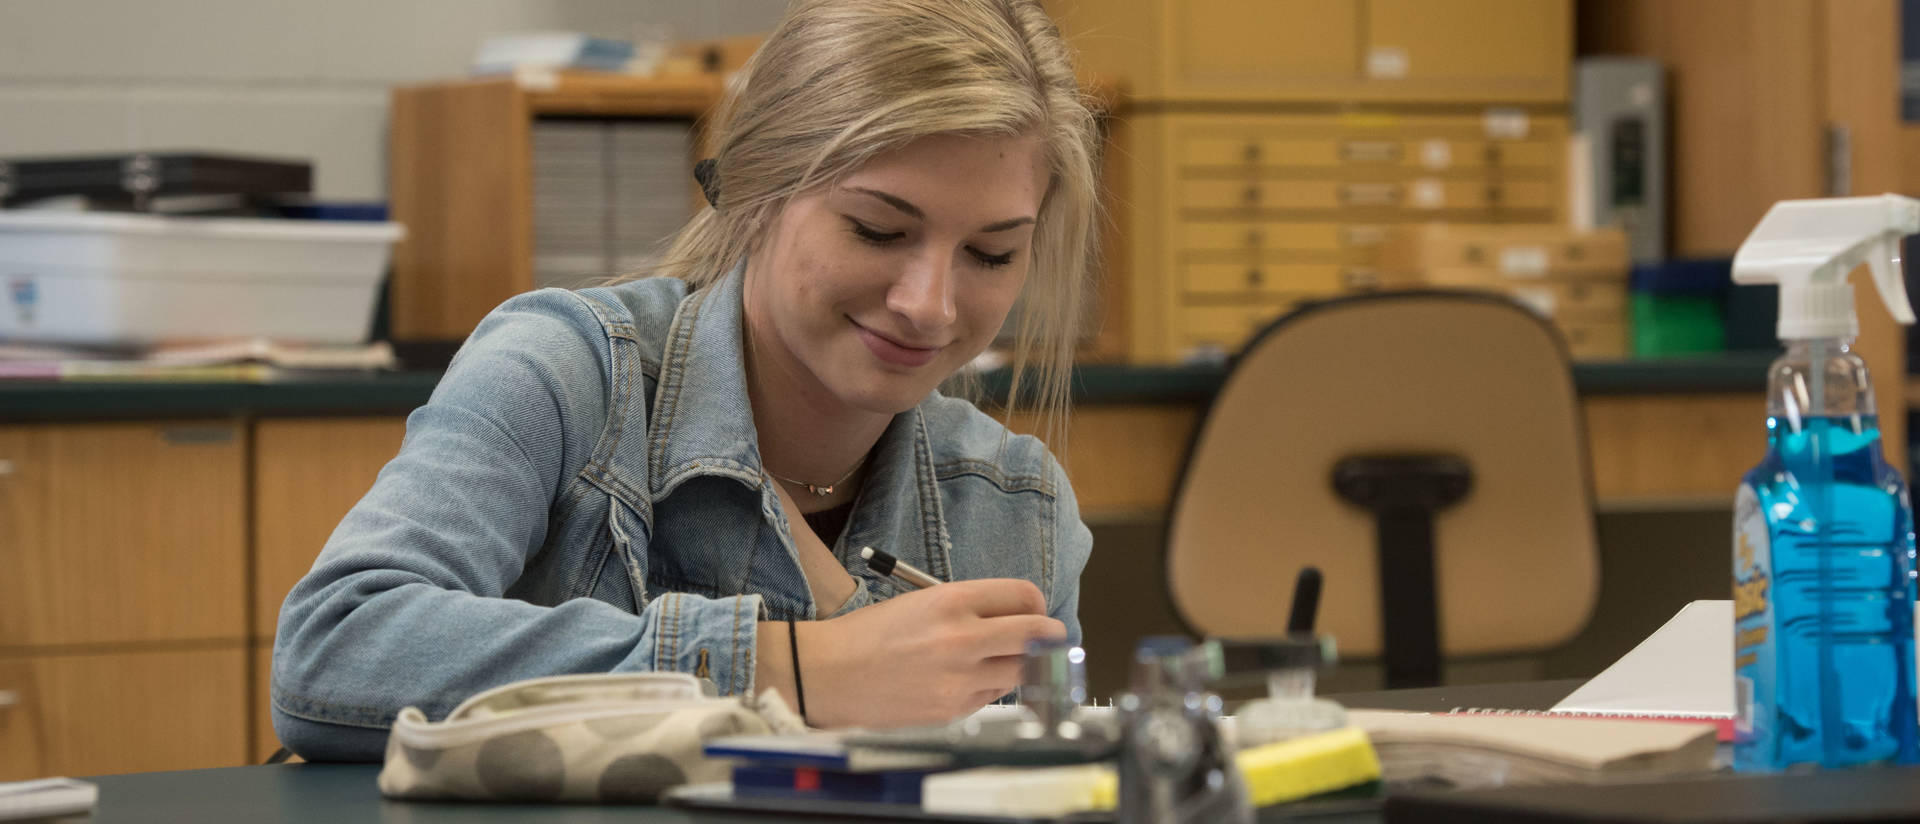 UW-Eau Claire – Barron County student takes note during science lab.